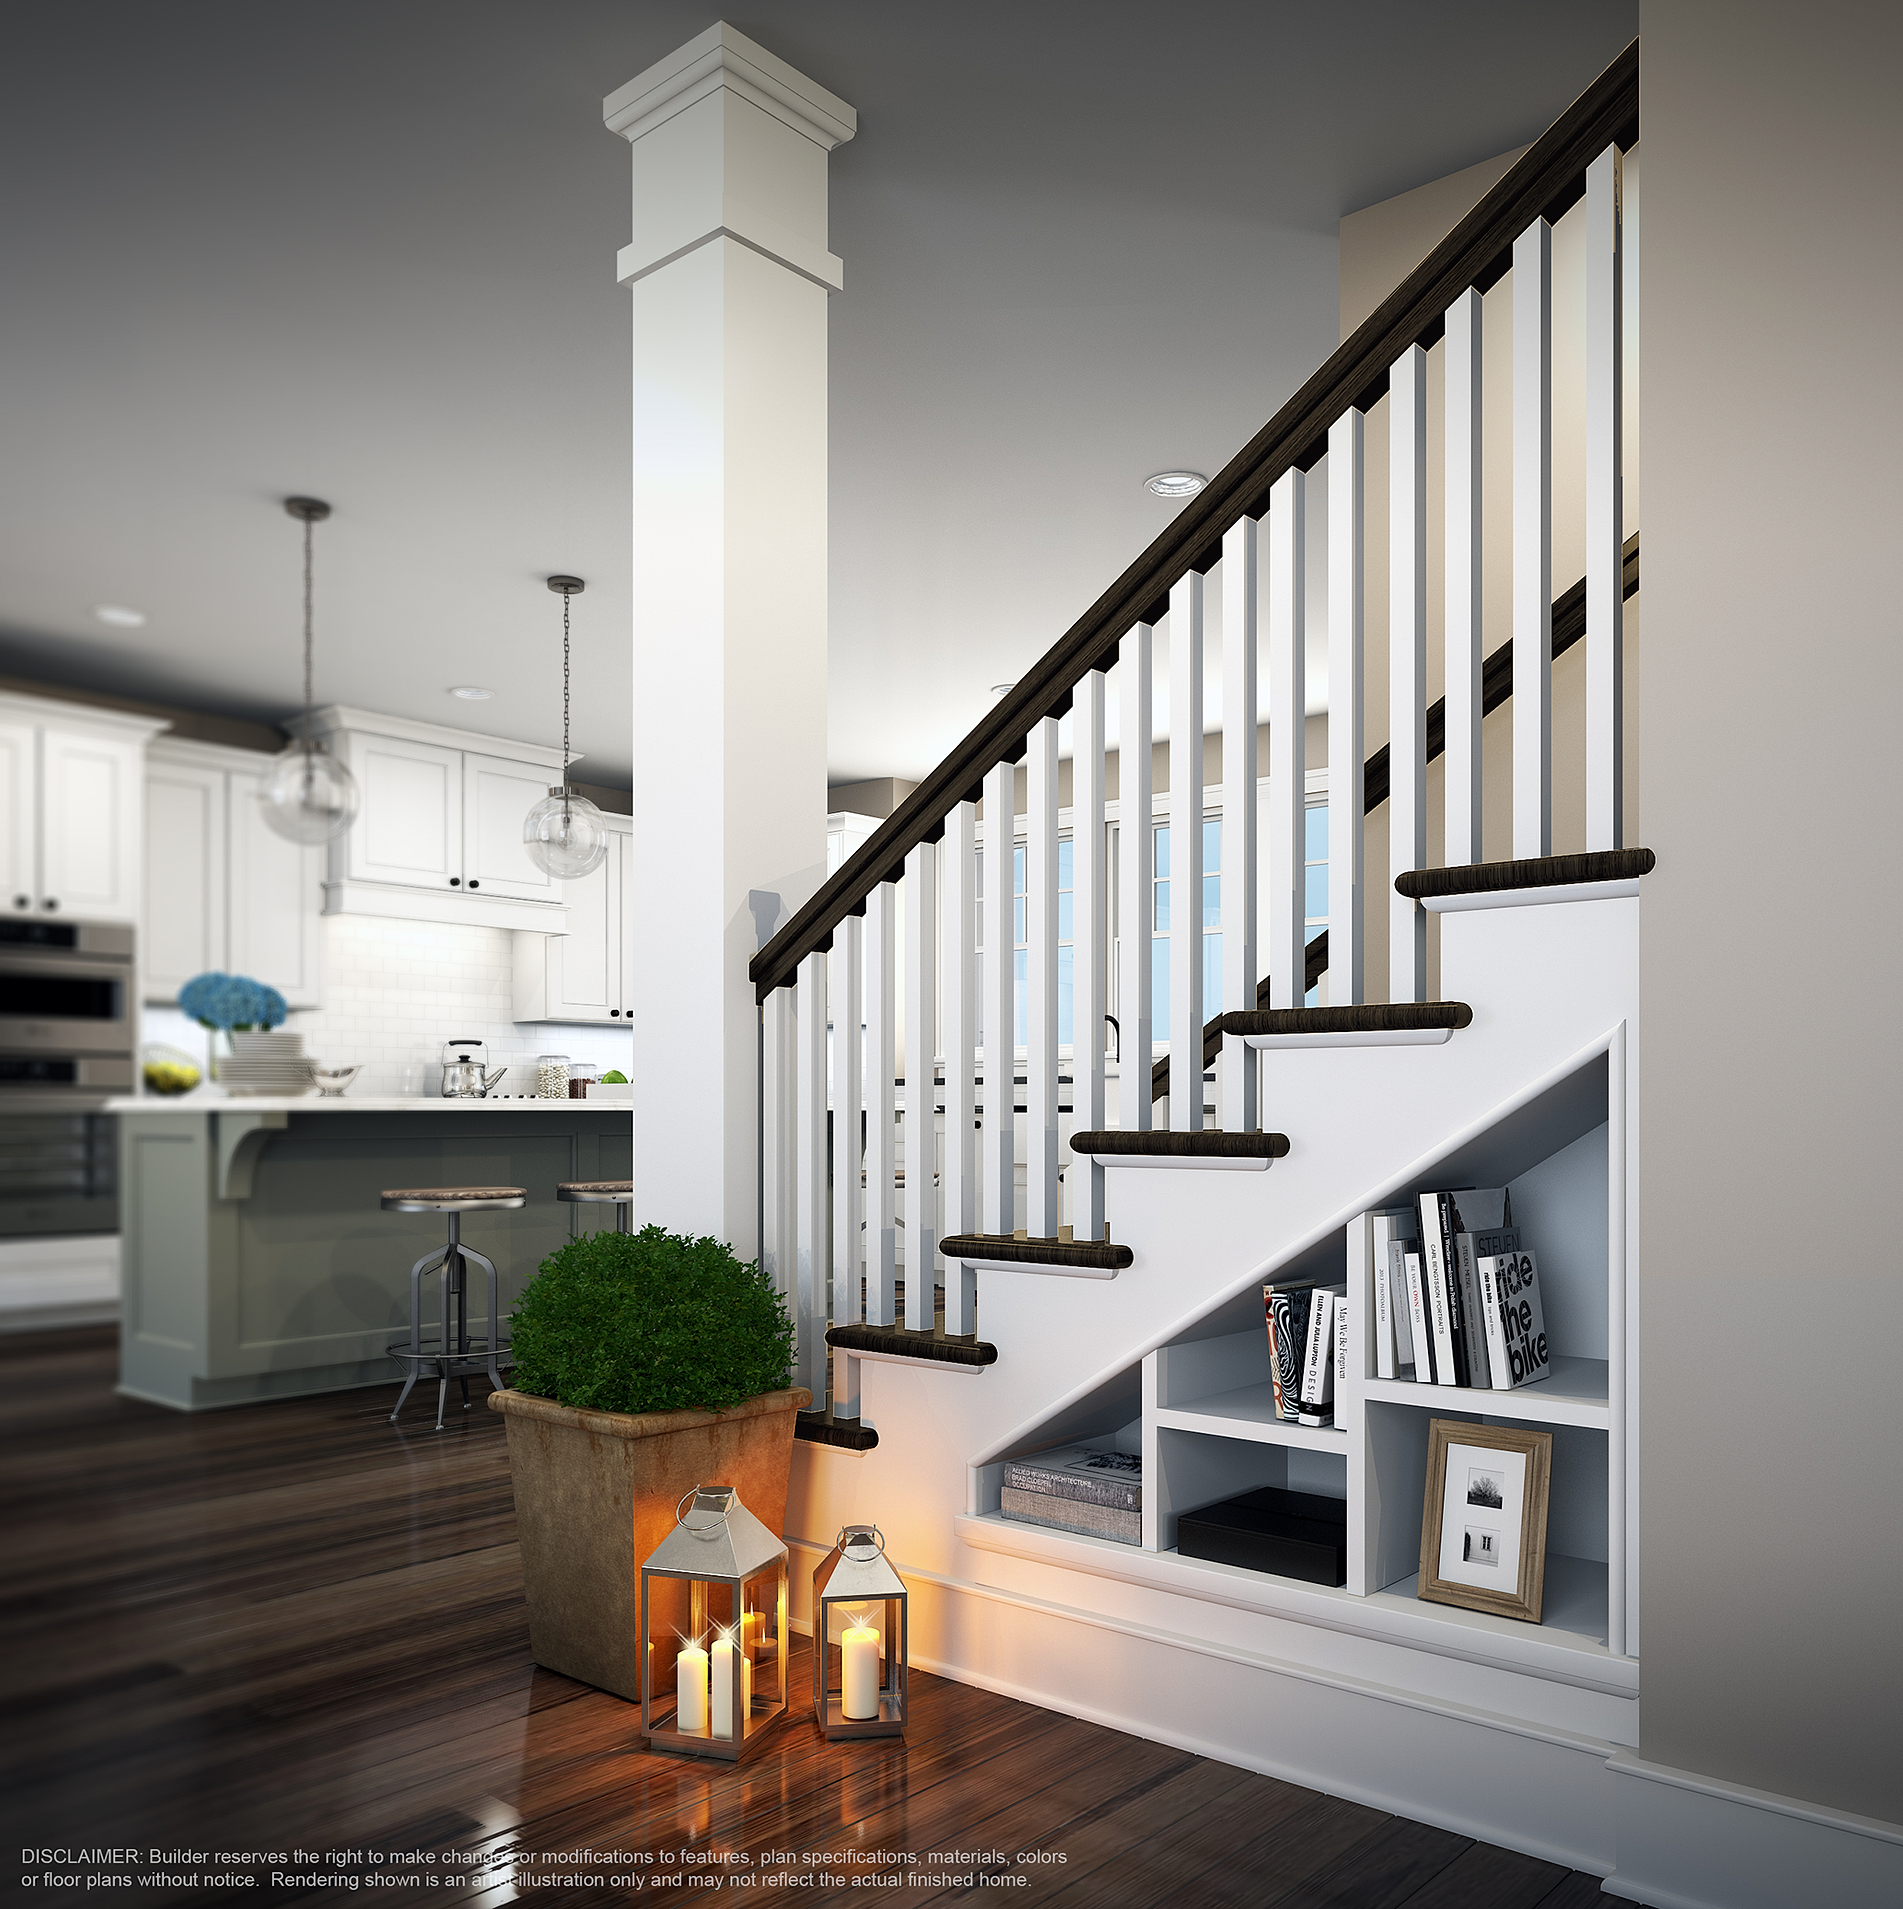 Fishbein Design providing beautiful 3D architectural renderings